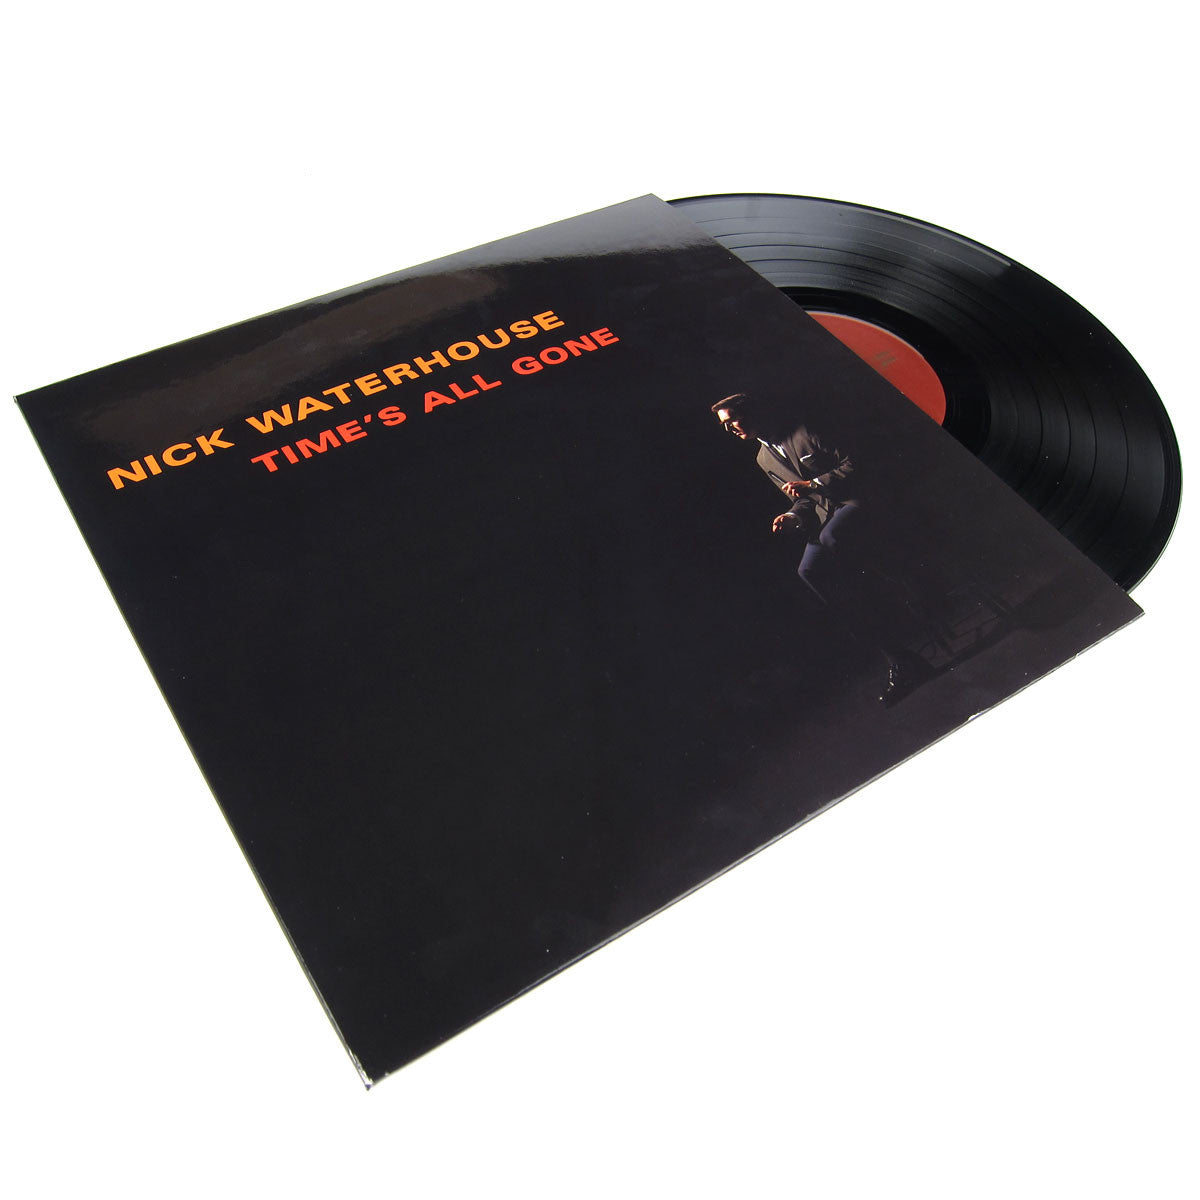 Nick Waterhouse: Time's All Gone Vinyl LP